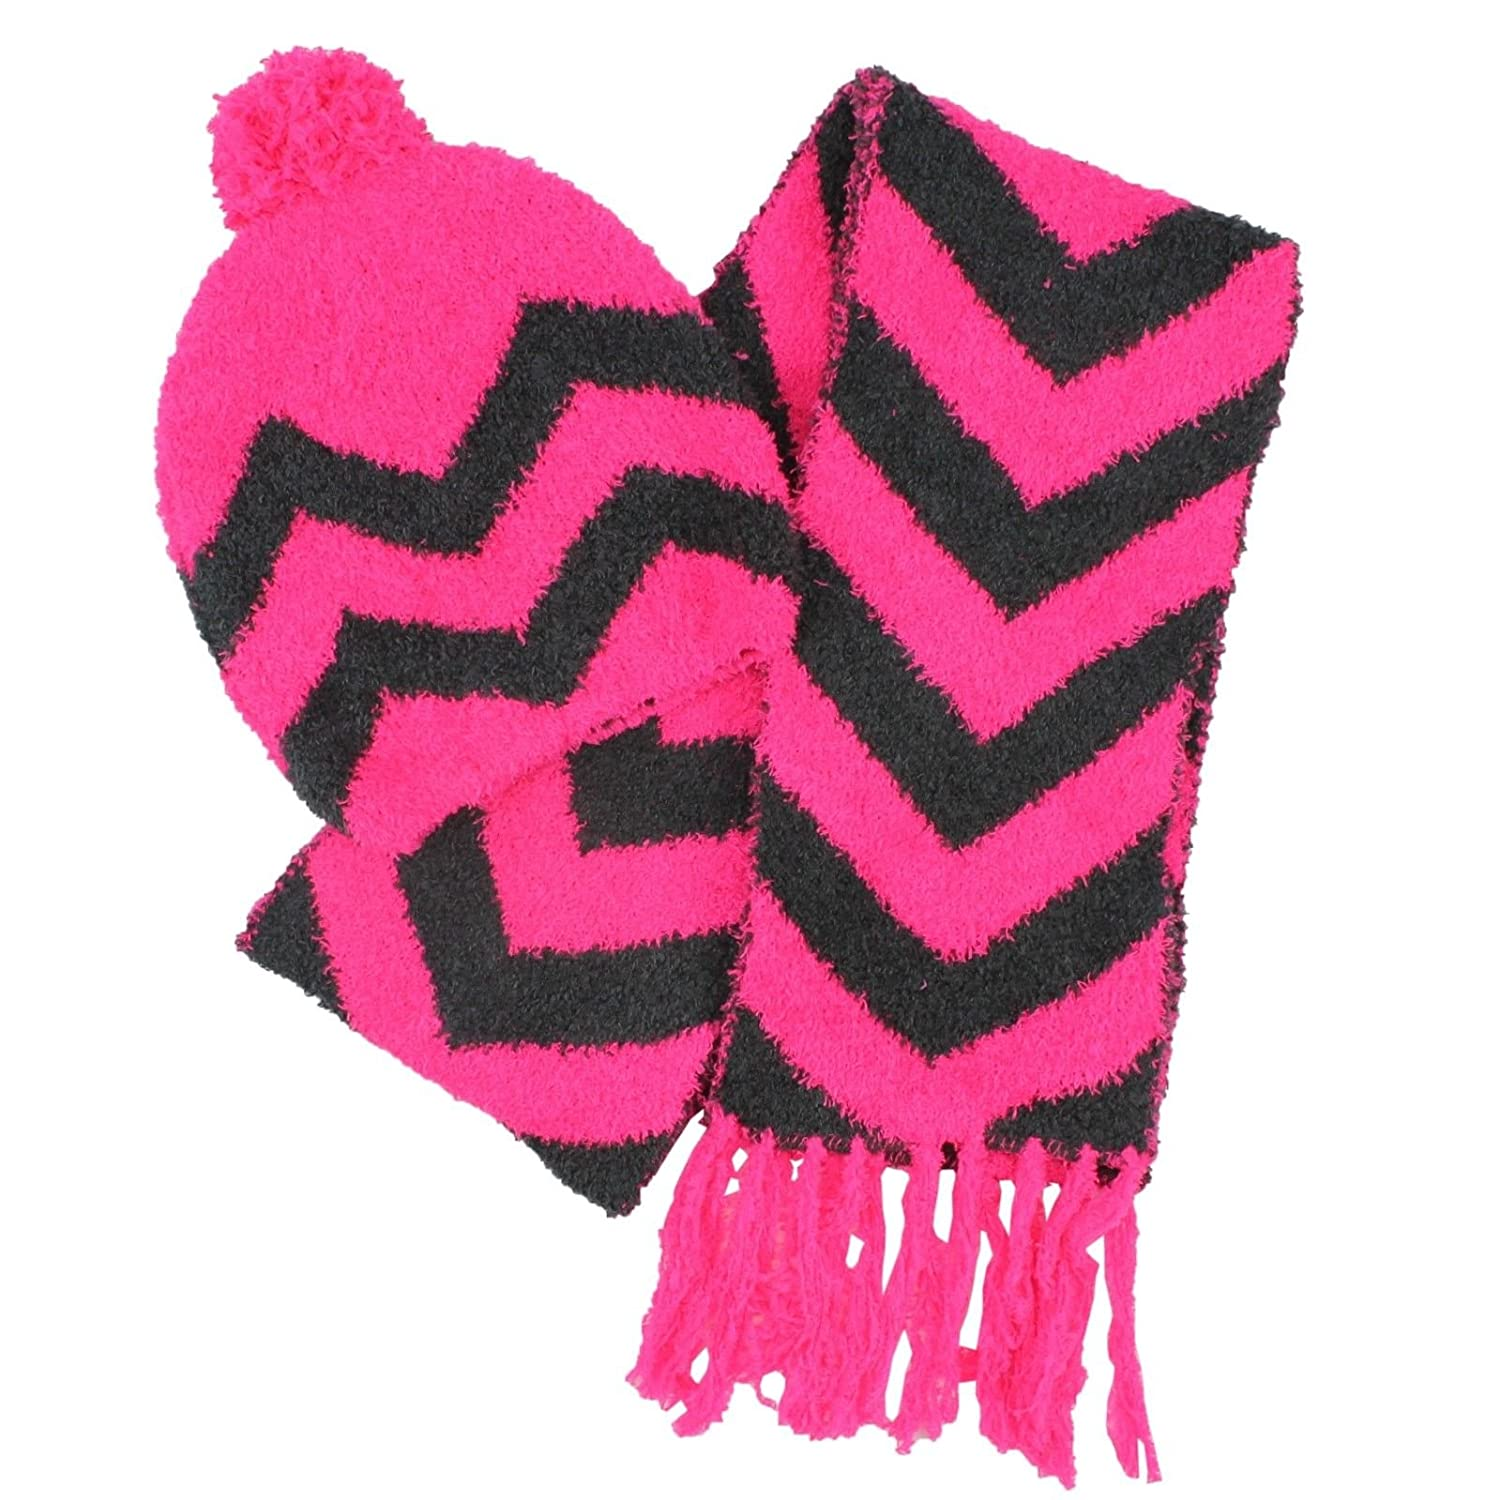 Jumping Beans Chenille Hat /& Scarf 2 Item Set for Girls